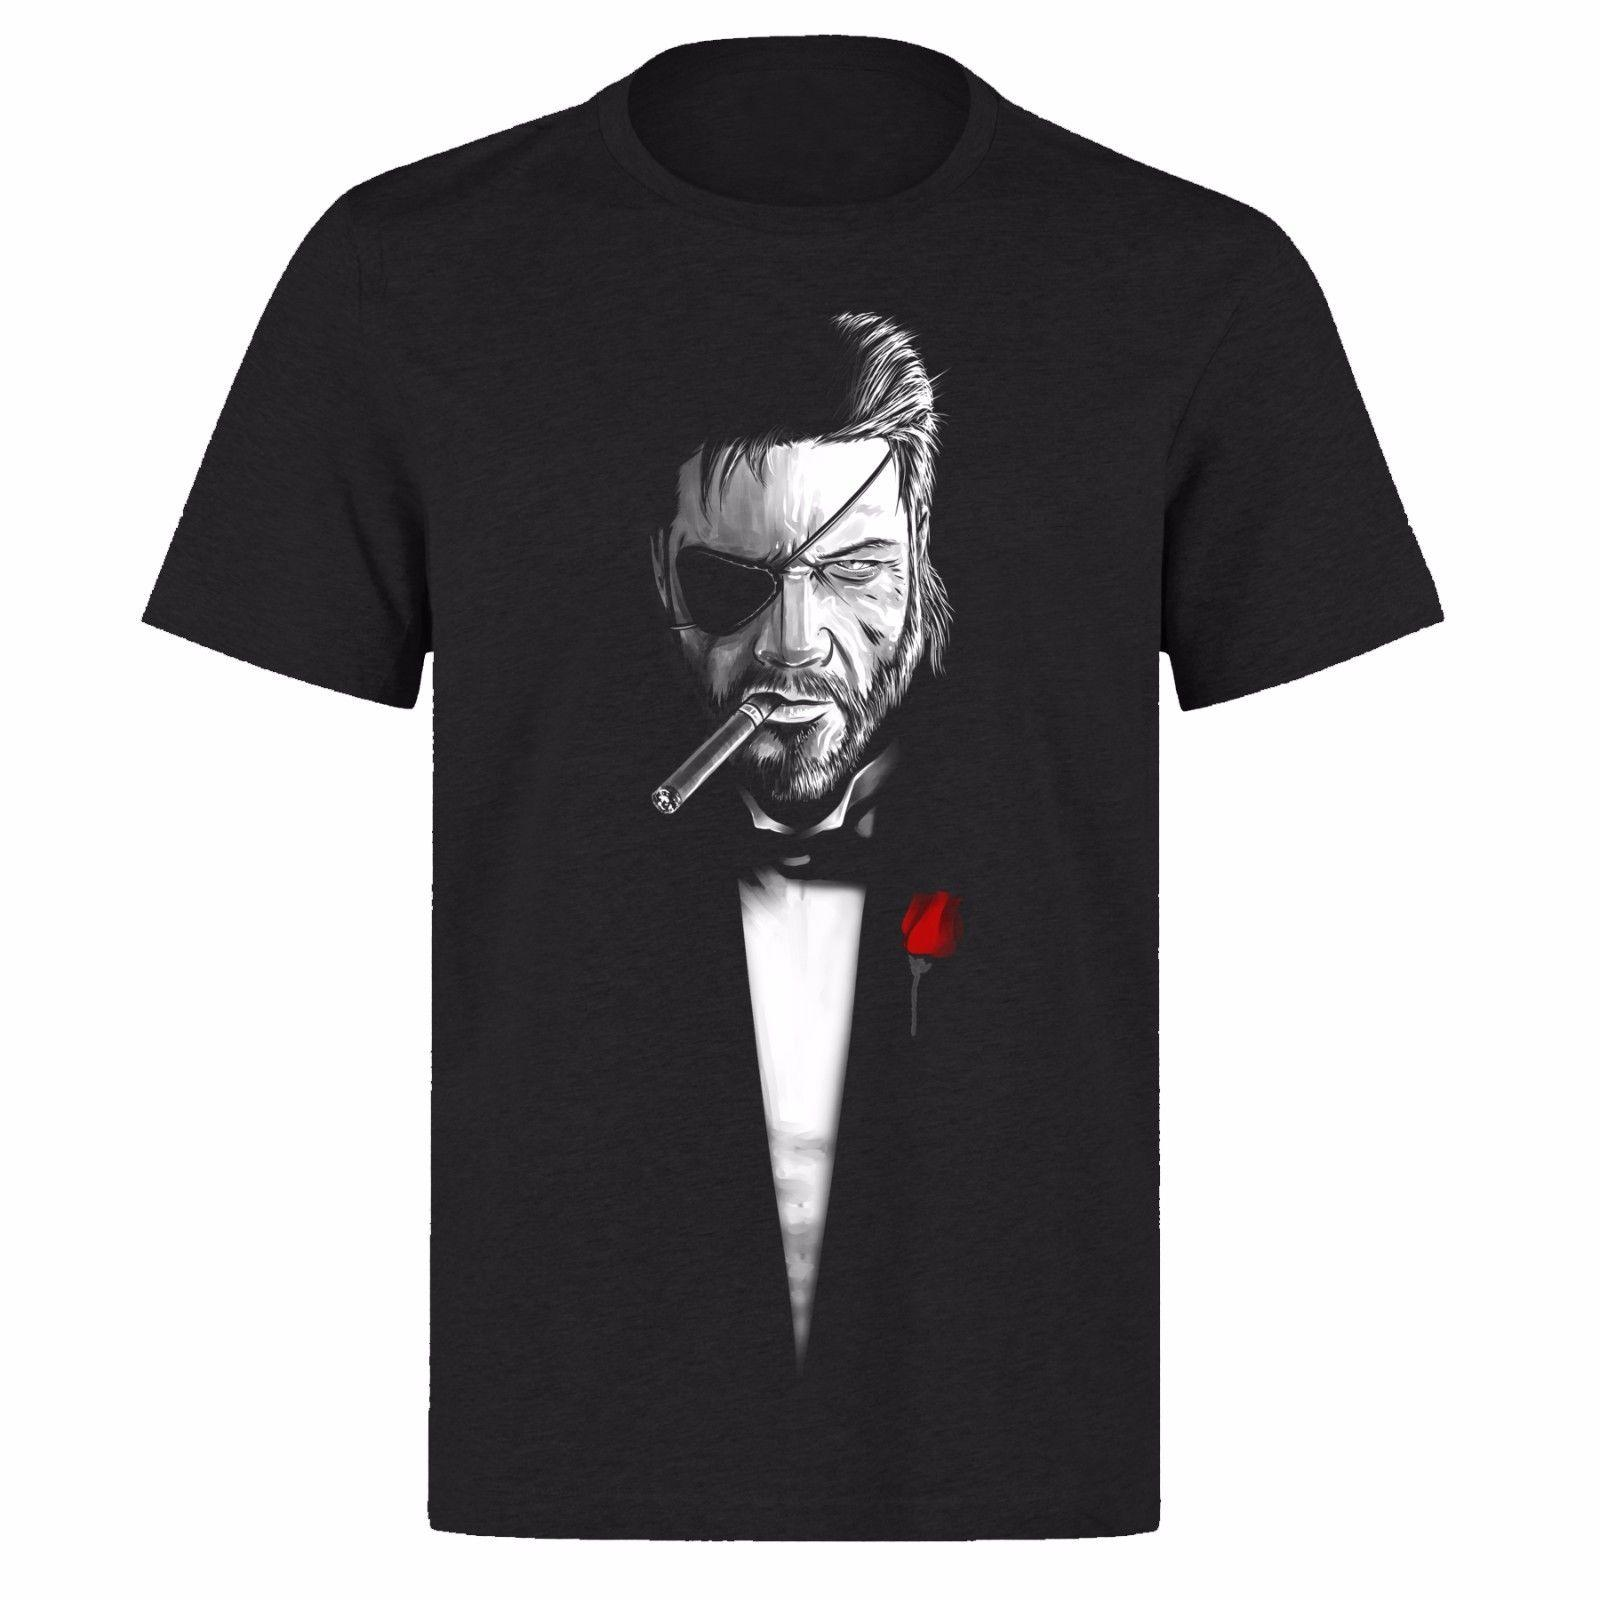 785e6254754bf Compre SOLID SNAKE METAL GEAR SOLID THE GODFATHER UNISEX BLACK PH21 CAMISETA  Camiseta De Verano O Cuello